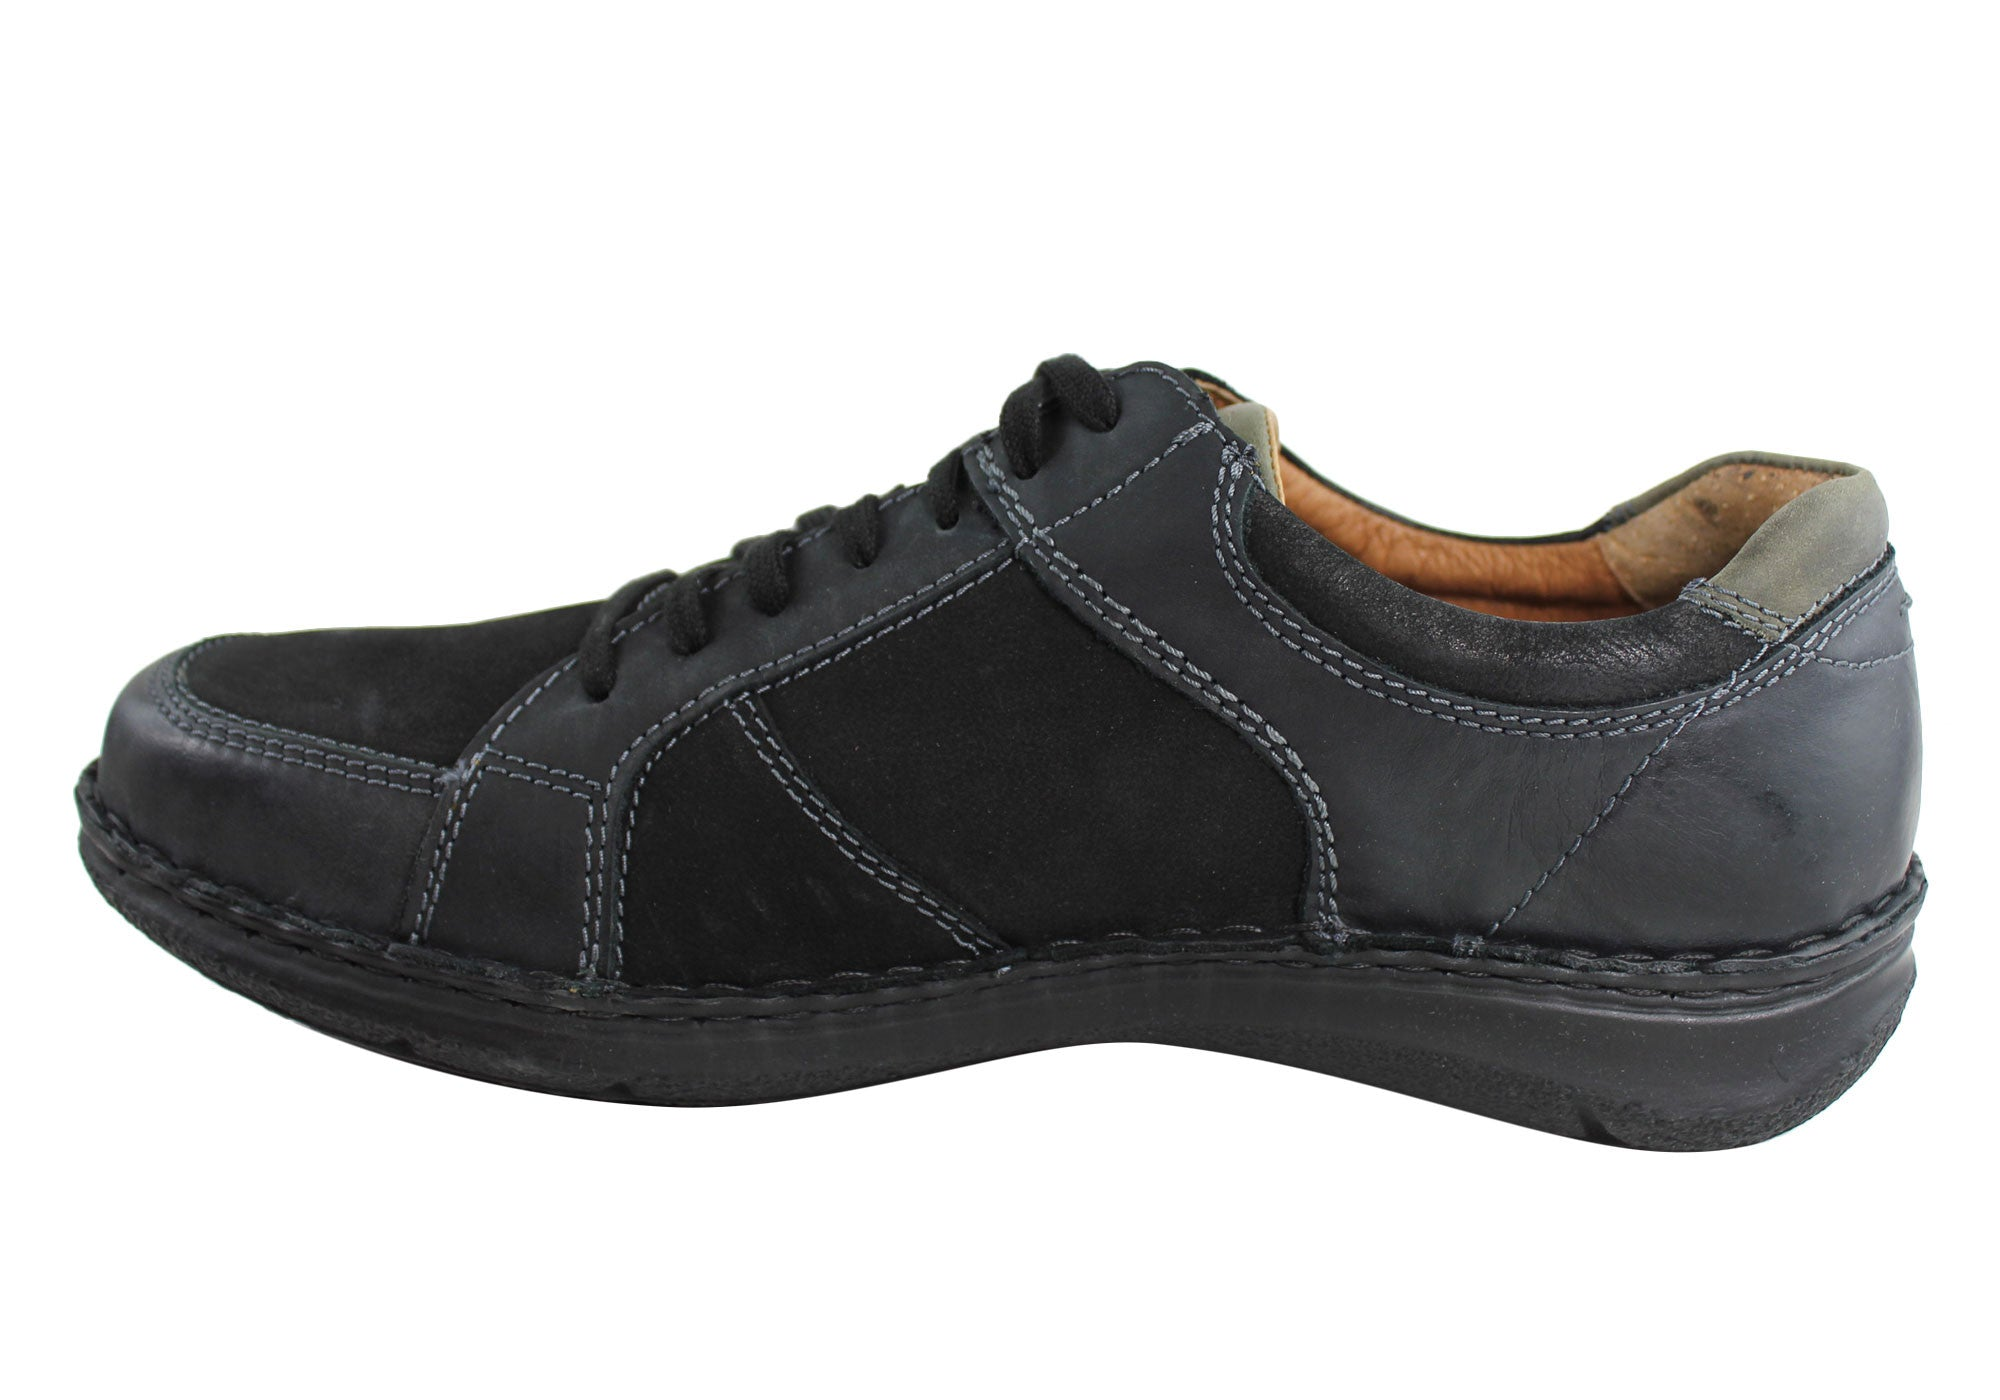 Josef Seibel Anvers 49 Mens Extra Wide Fit Comfort Shoes Brand House Direct